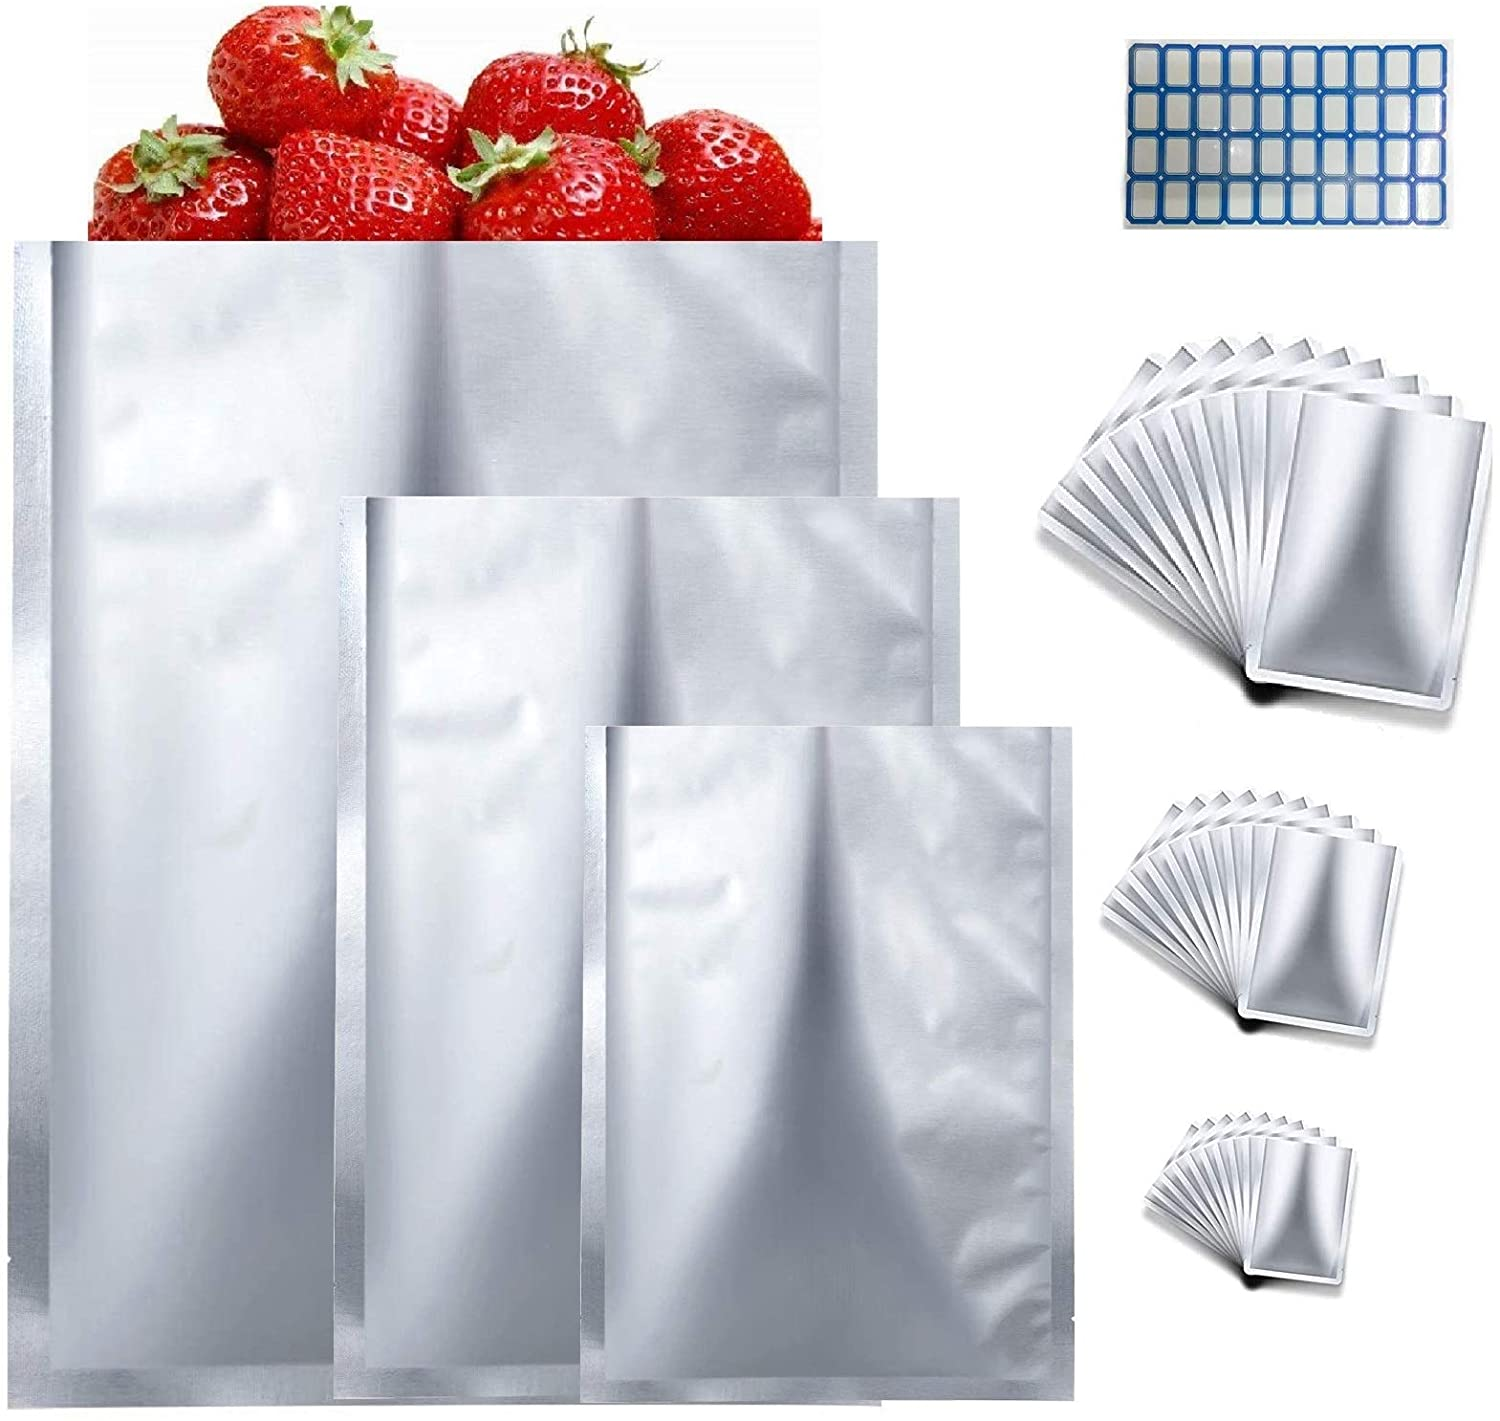 Mylar Aluminum Foil Bags-30 Pieces 3 Sizes Metallic Premium Mylar Foil Flat Heat Sealing Bags Storage Bags Pouch for Food Coffee Tea Beans Candy Storage (5 x 7 Inch, 6 x 9 Inch, 8 x 11 Inch)